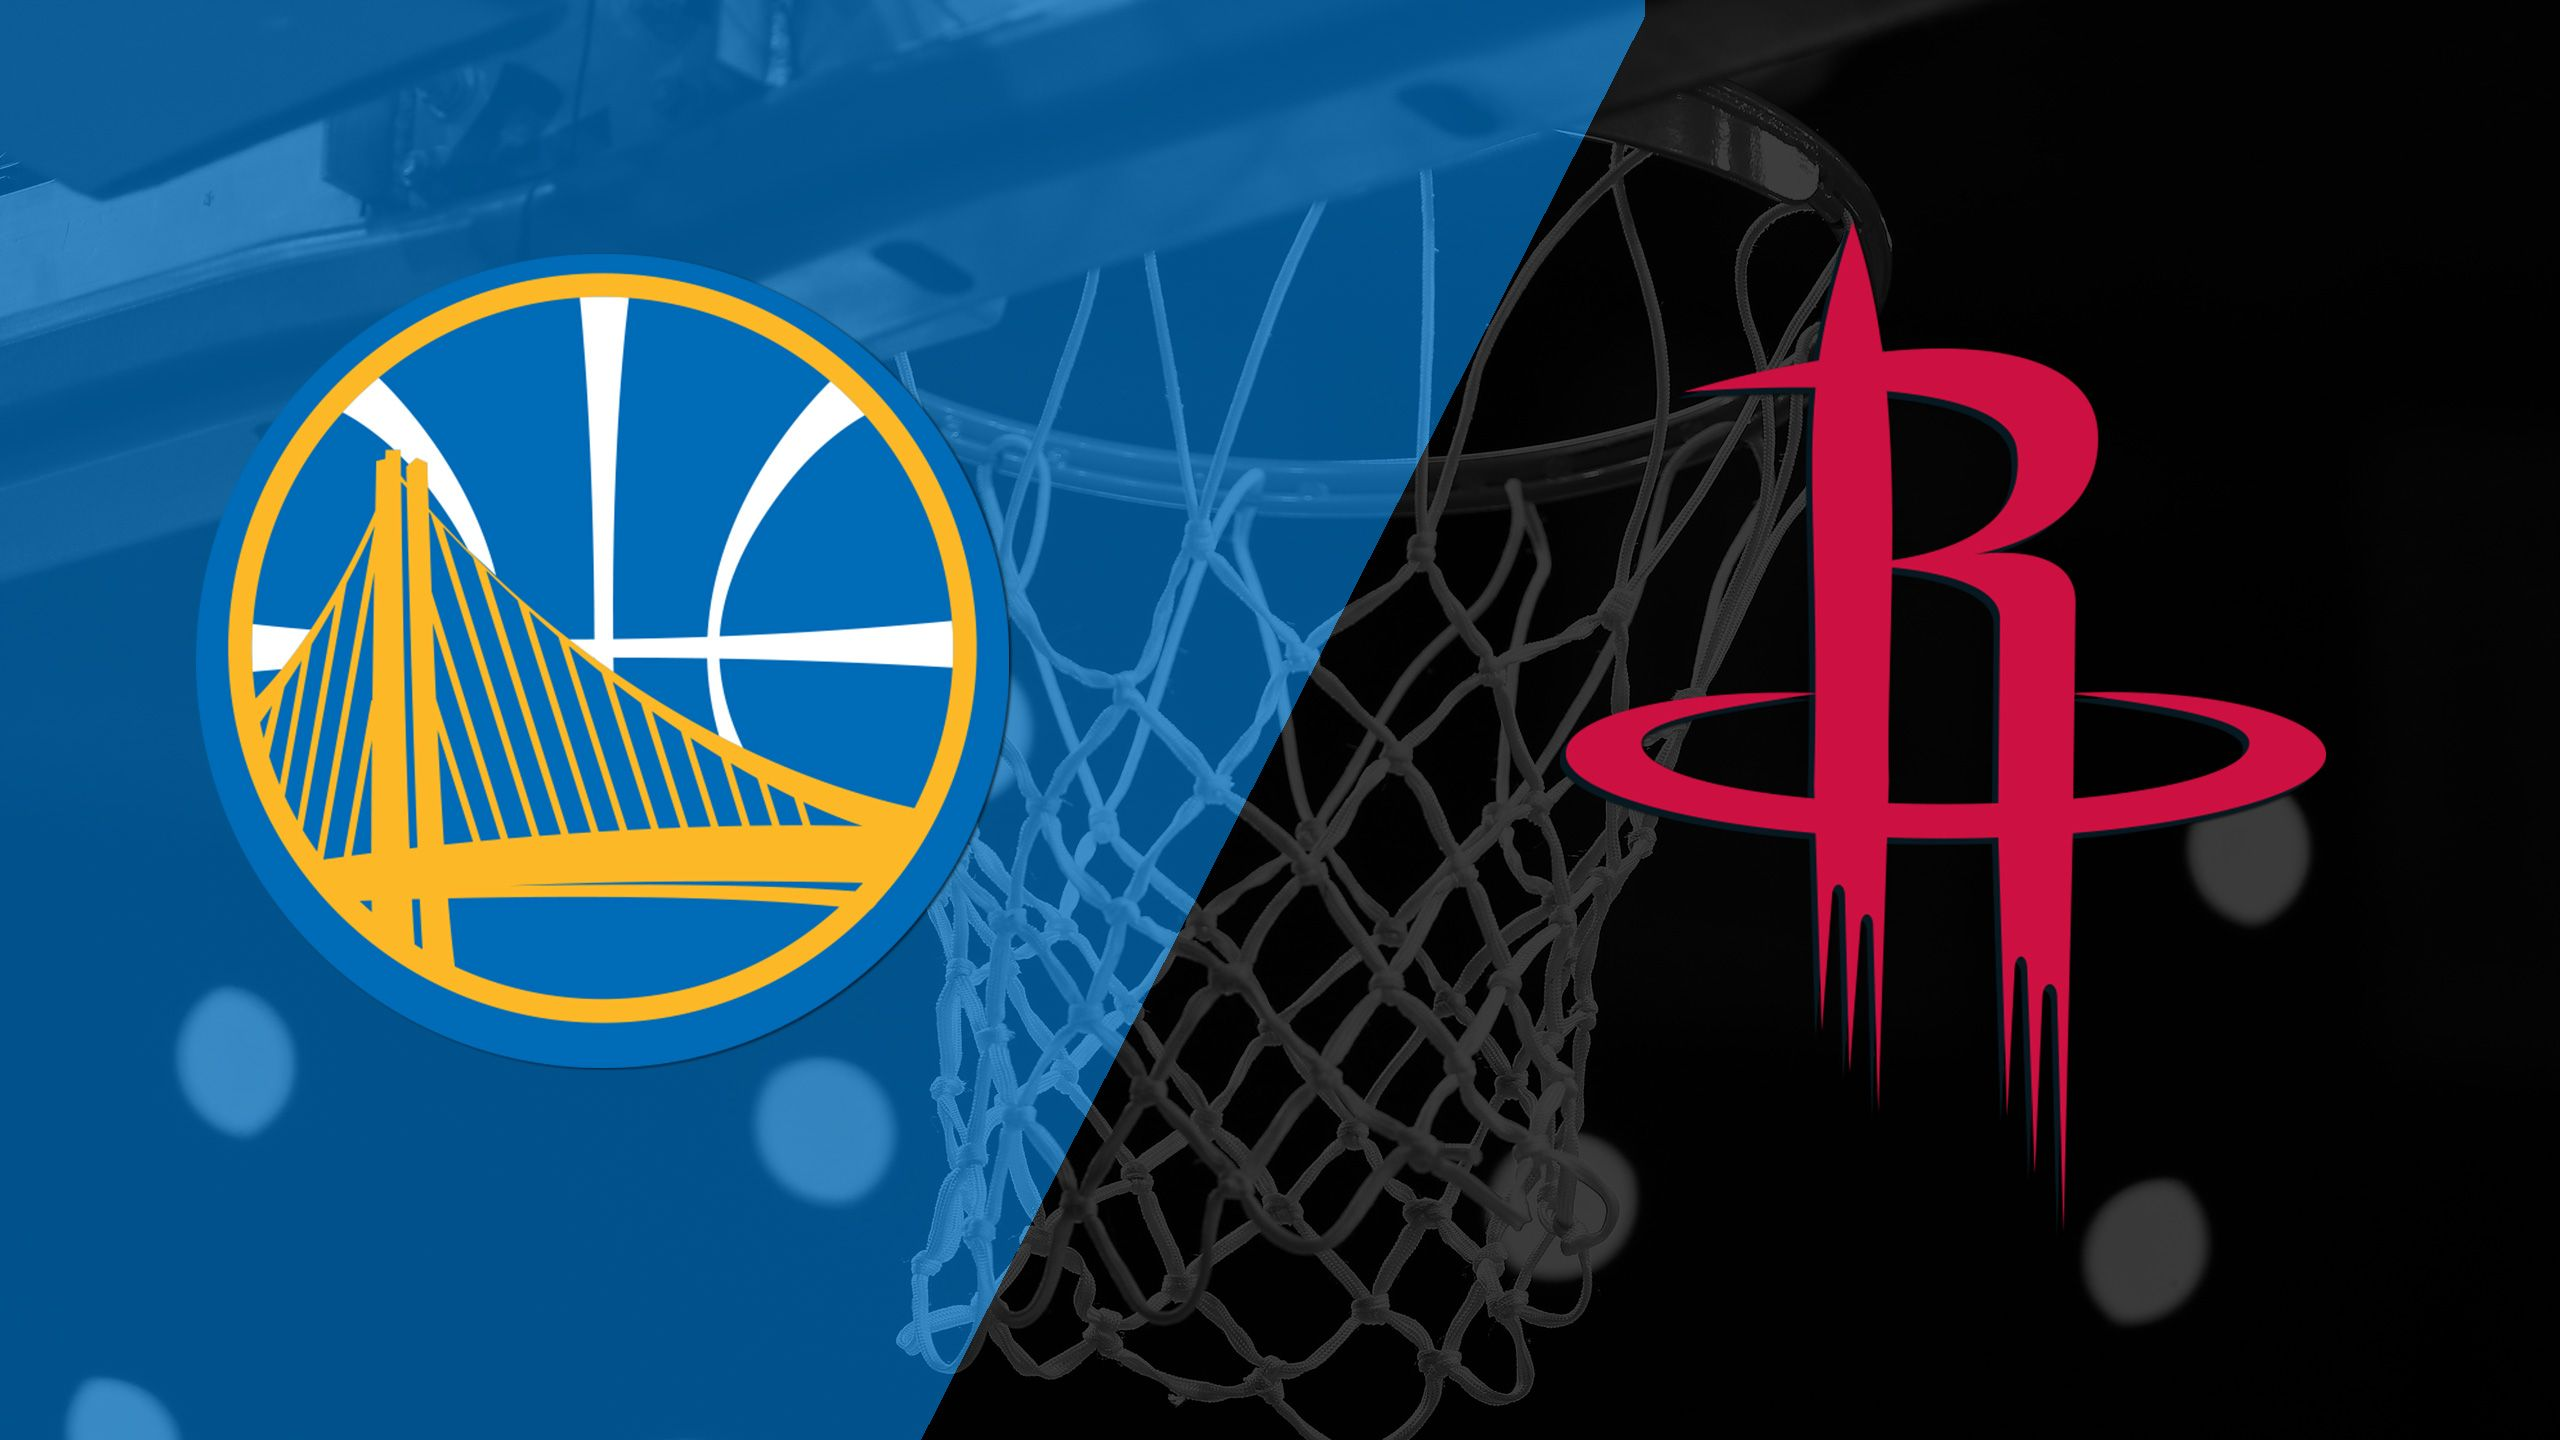 In Spanish - Golden State Warriors vs. Houston Rockets